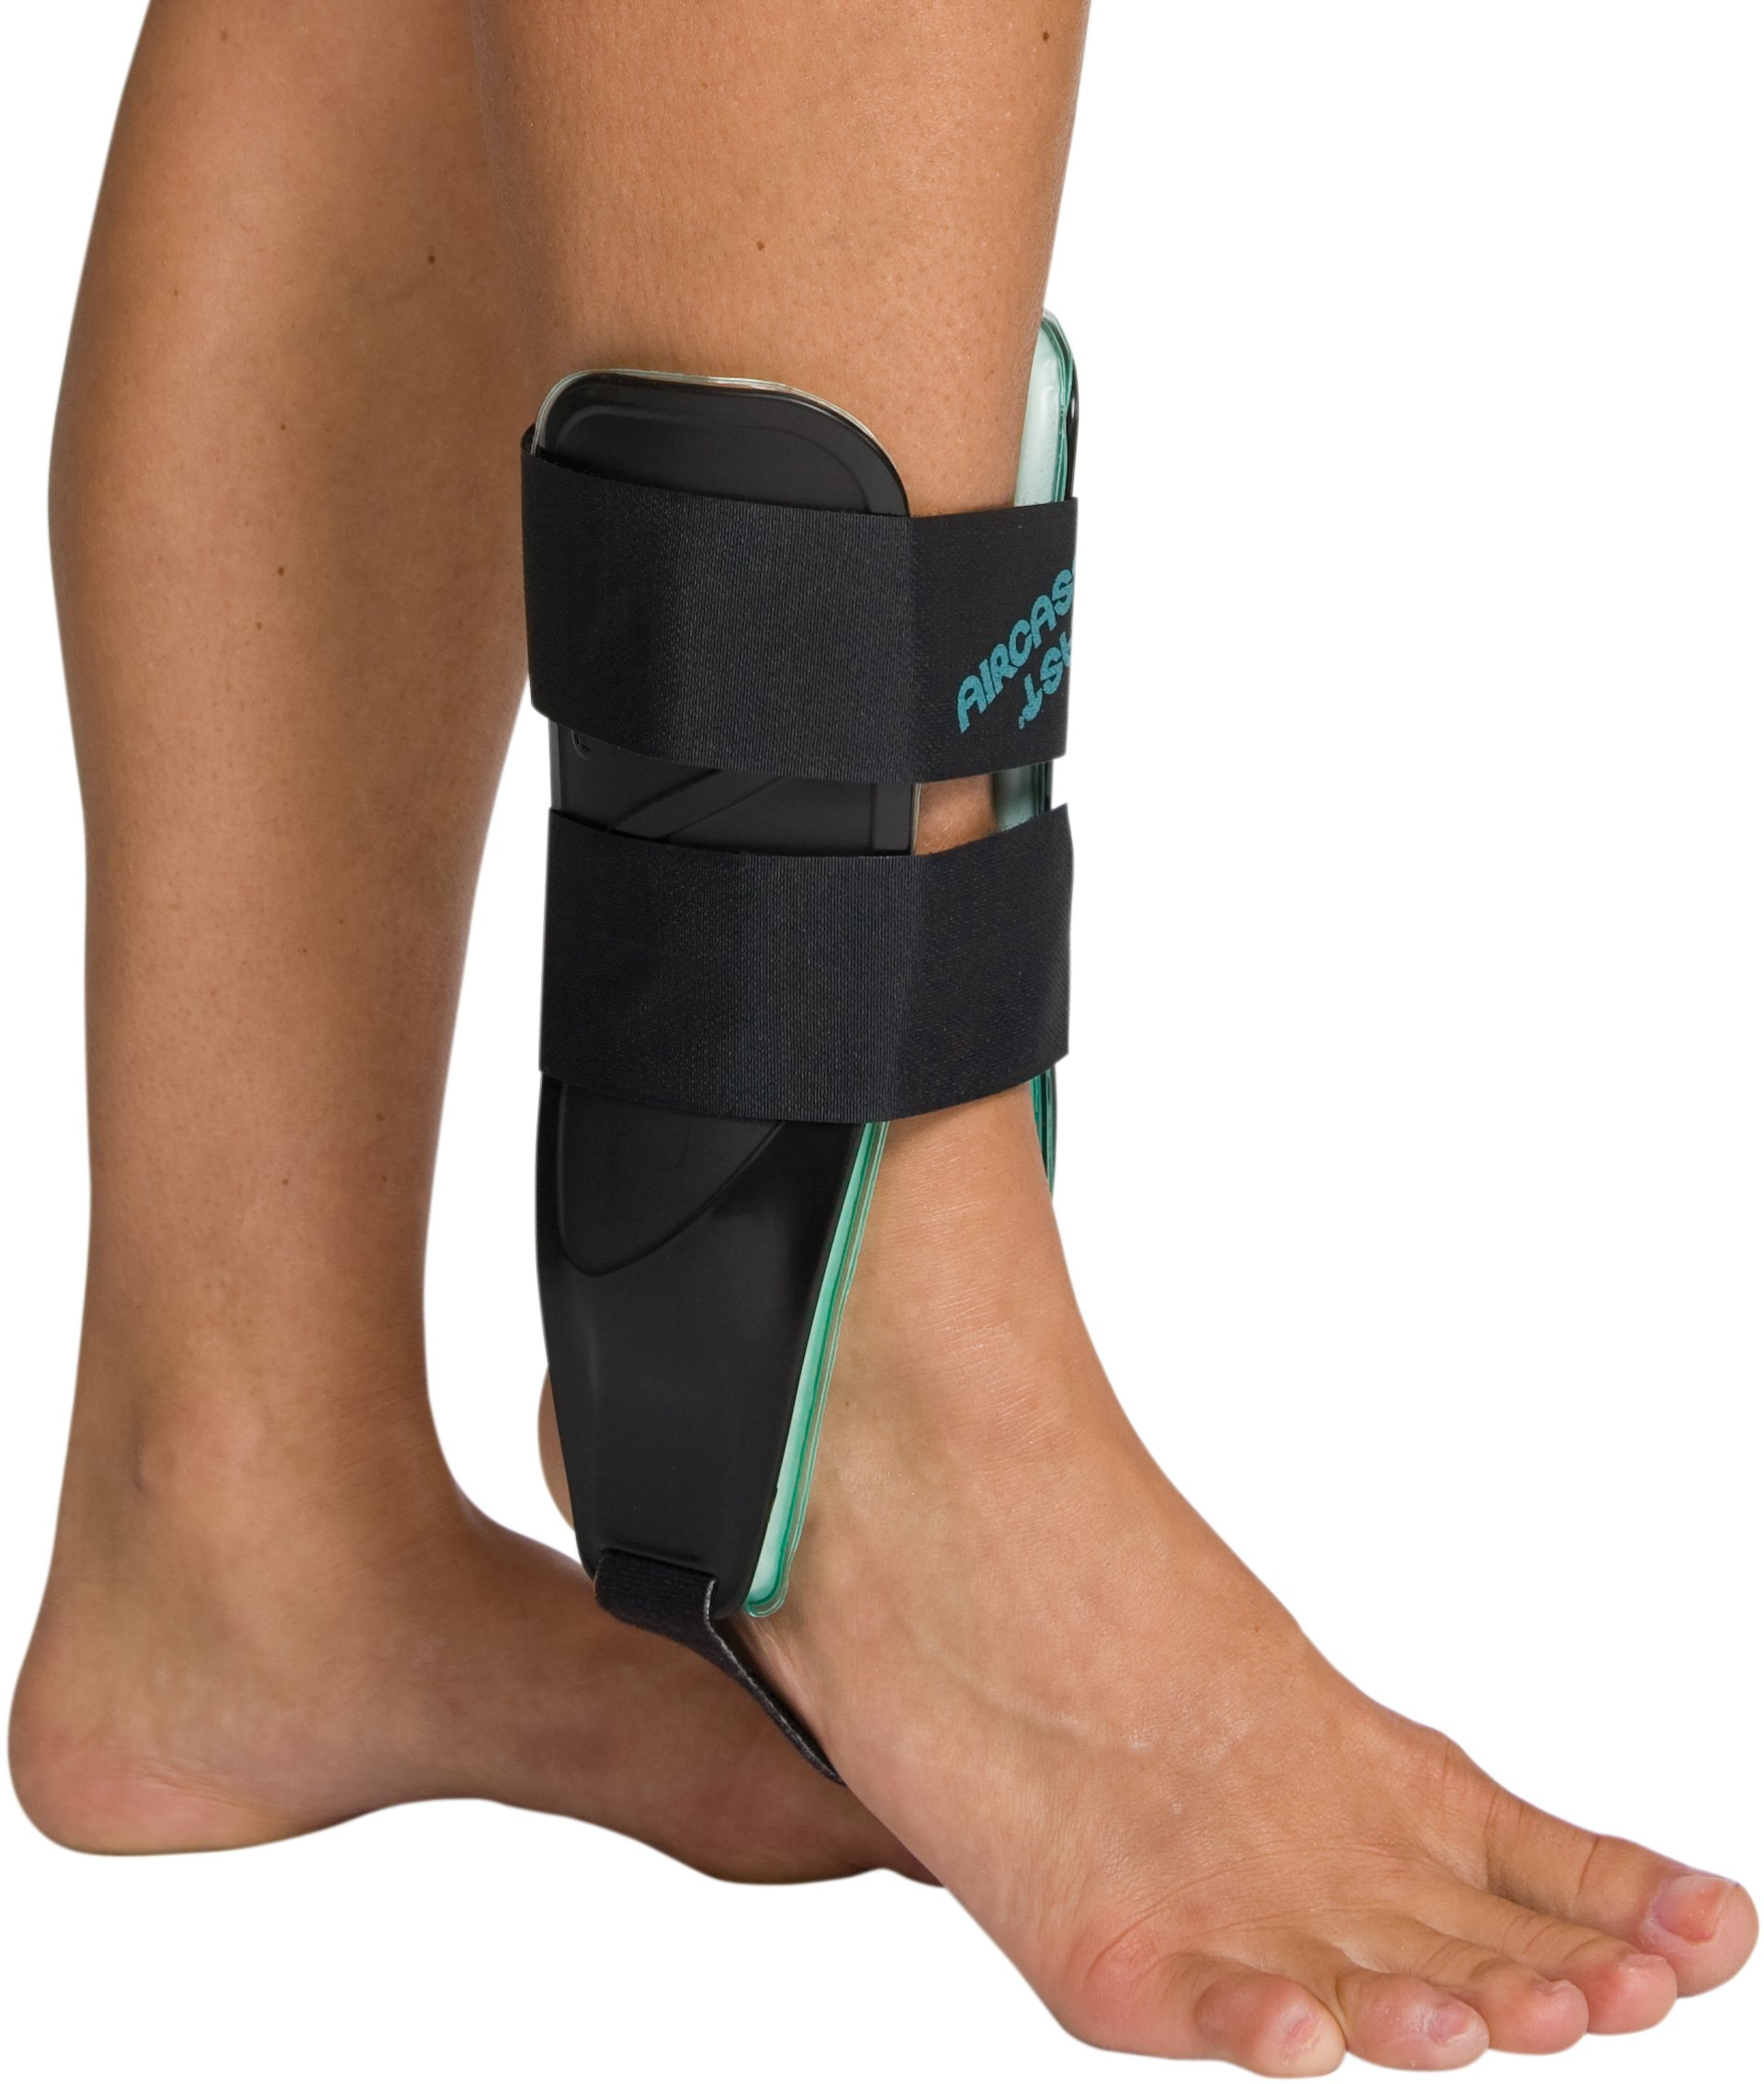 Aircast AC141AB08 Air-Stirrup Universe Ankle Support Brace, One Size Fits Most